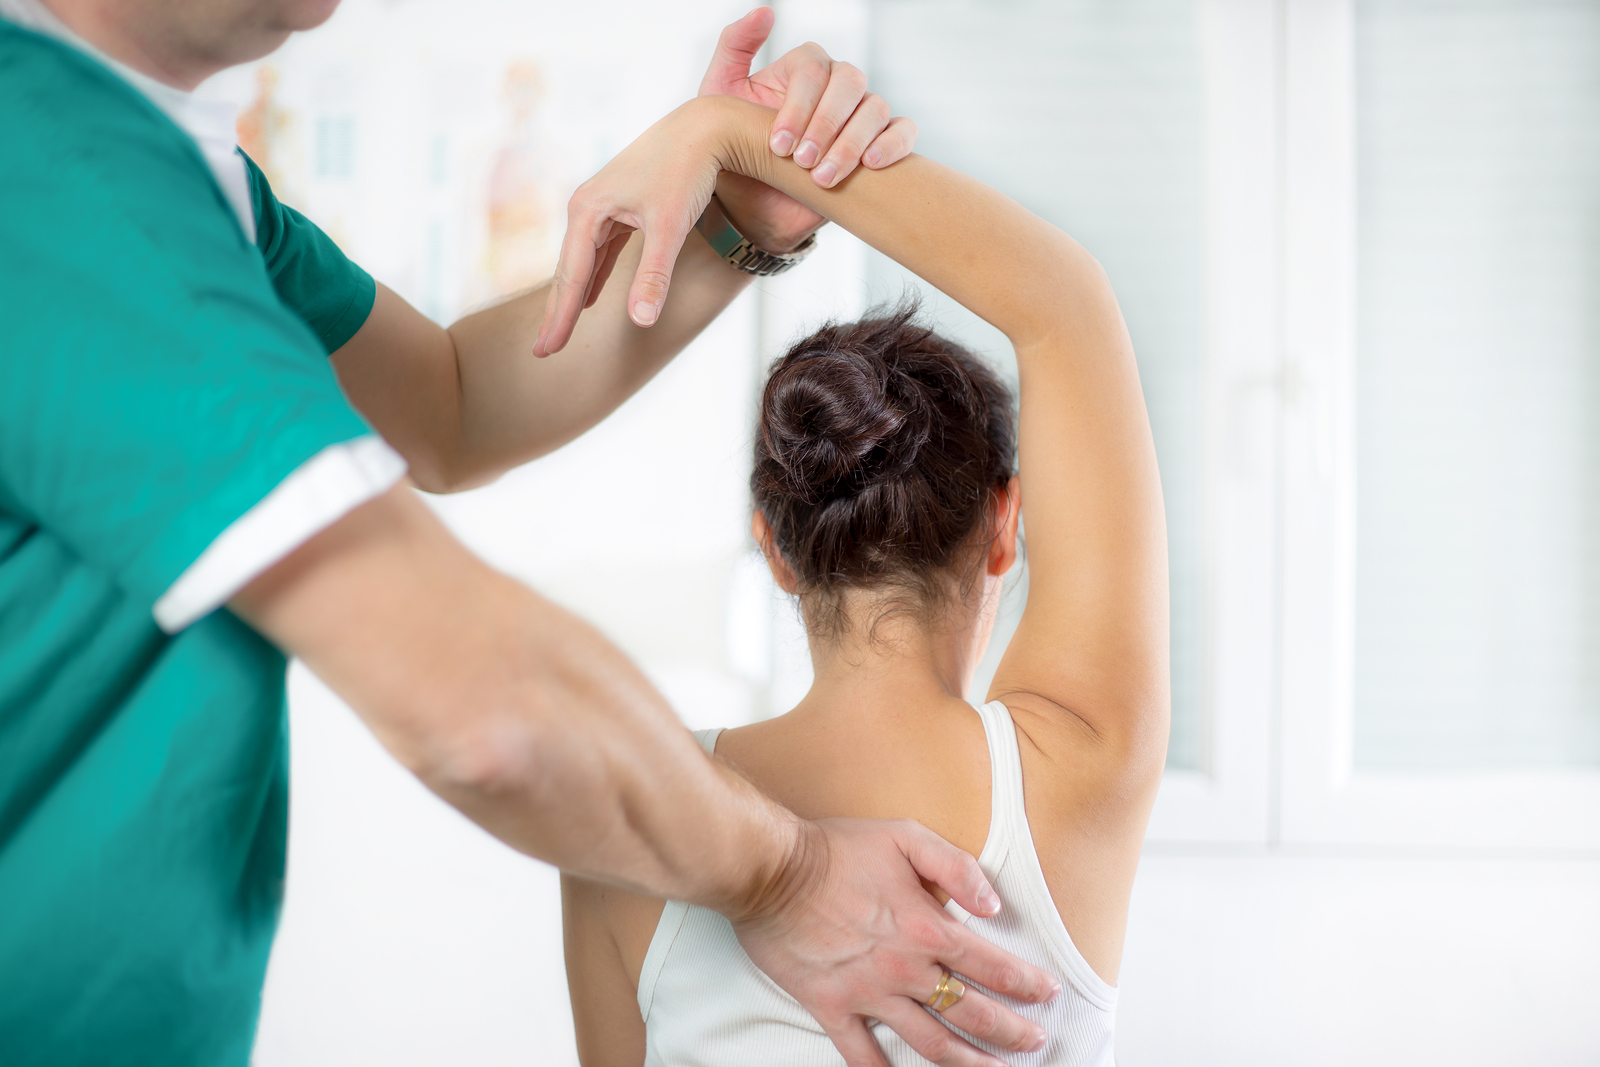 Conditions Treated by our tacoma chiropractor in Tacoma